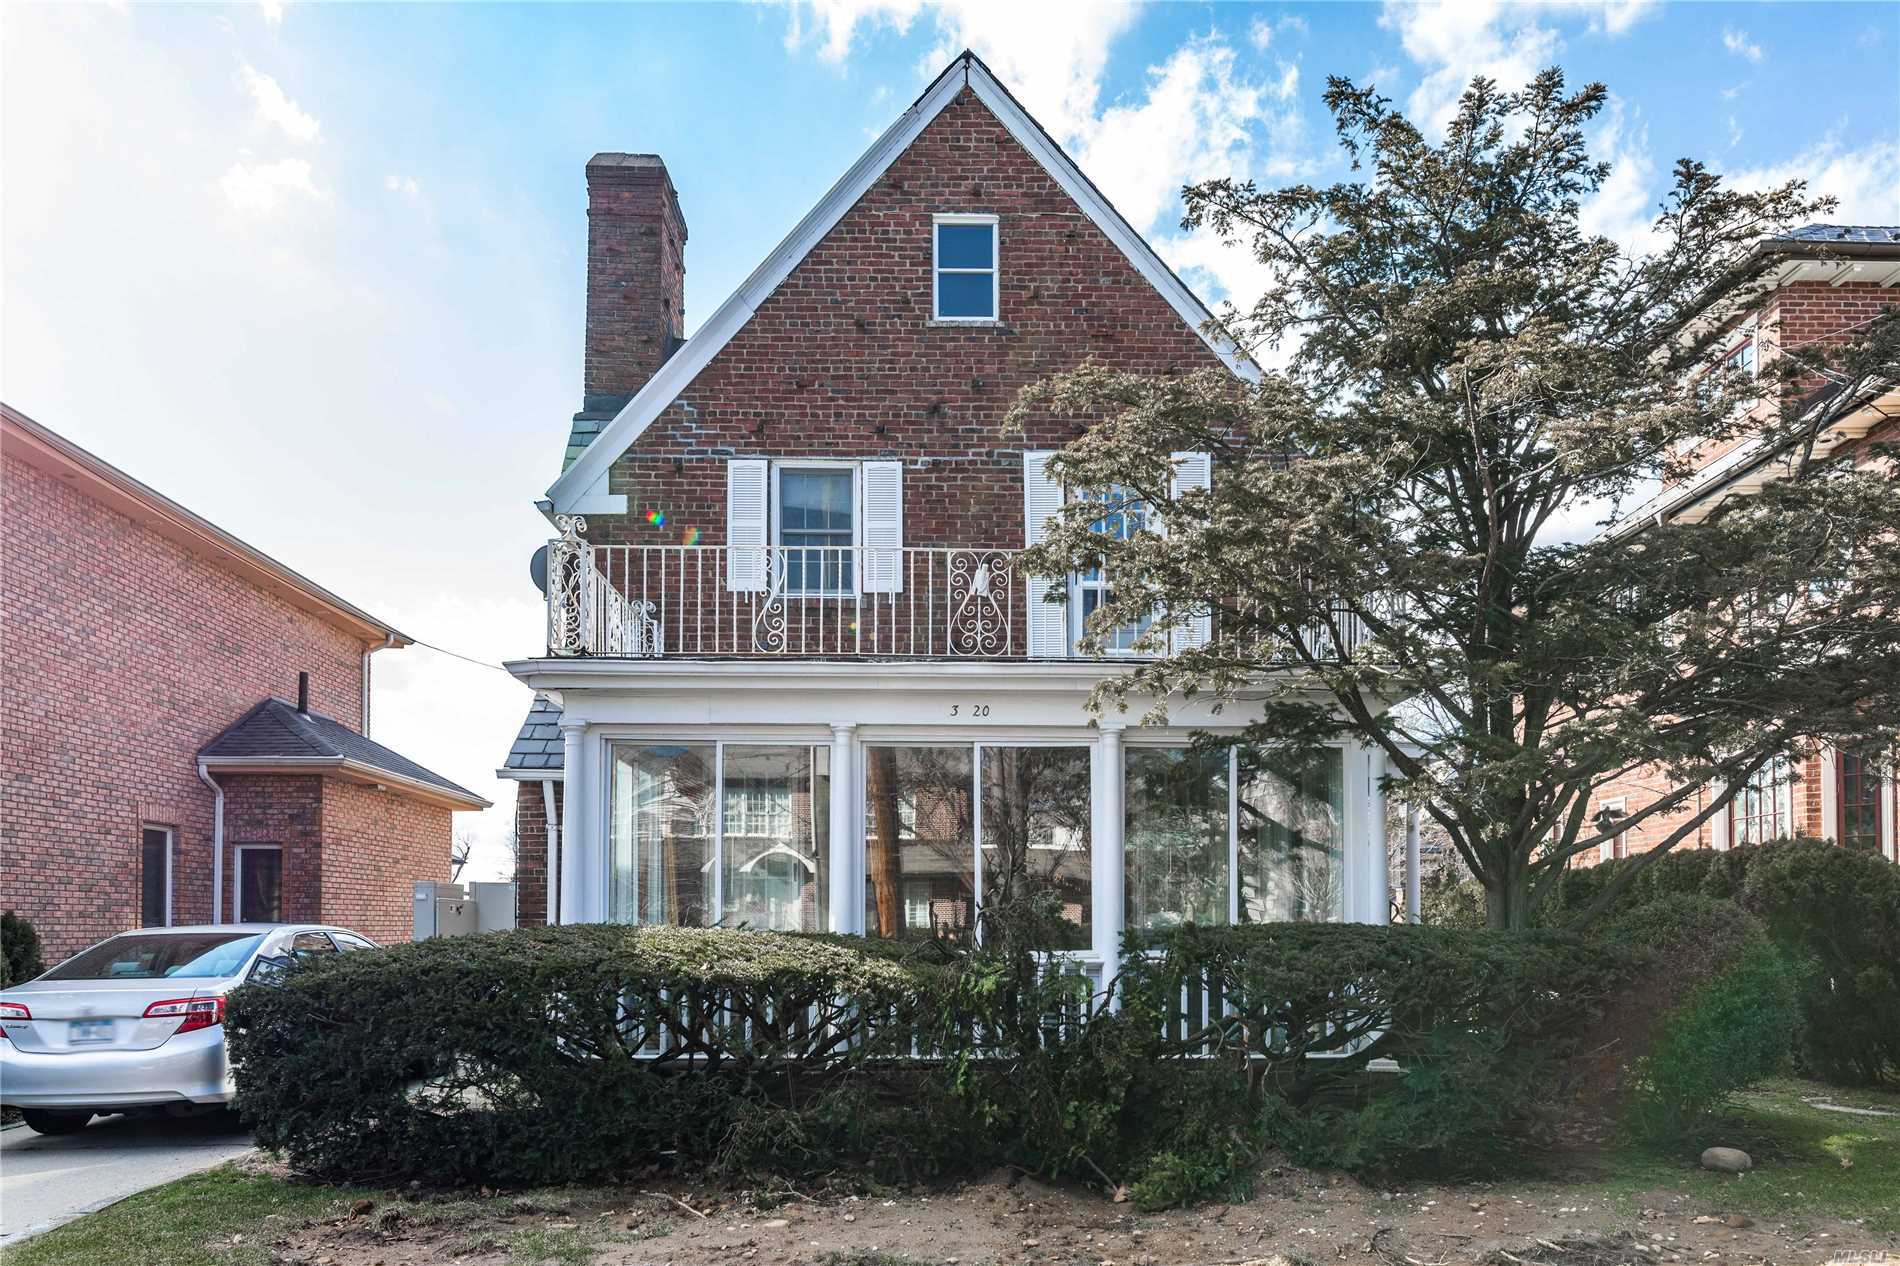 Charming All Brick 3Br Colonial On Beautiful 50X100 Lot Tucked In To Enclave In North East Queens Of Malba Featuring Hardwood Floors Throughout, Master Br With Bathroom, Detached Garage And Unfinished Basement.